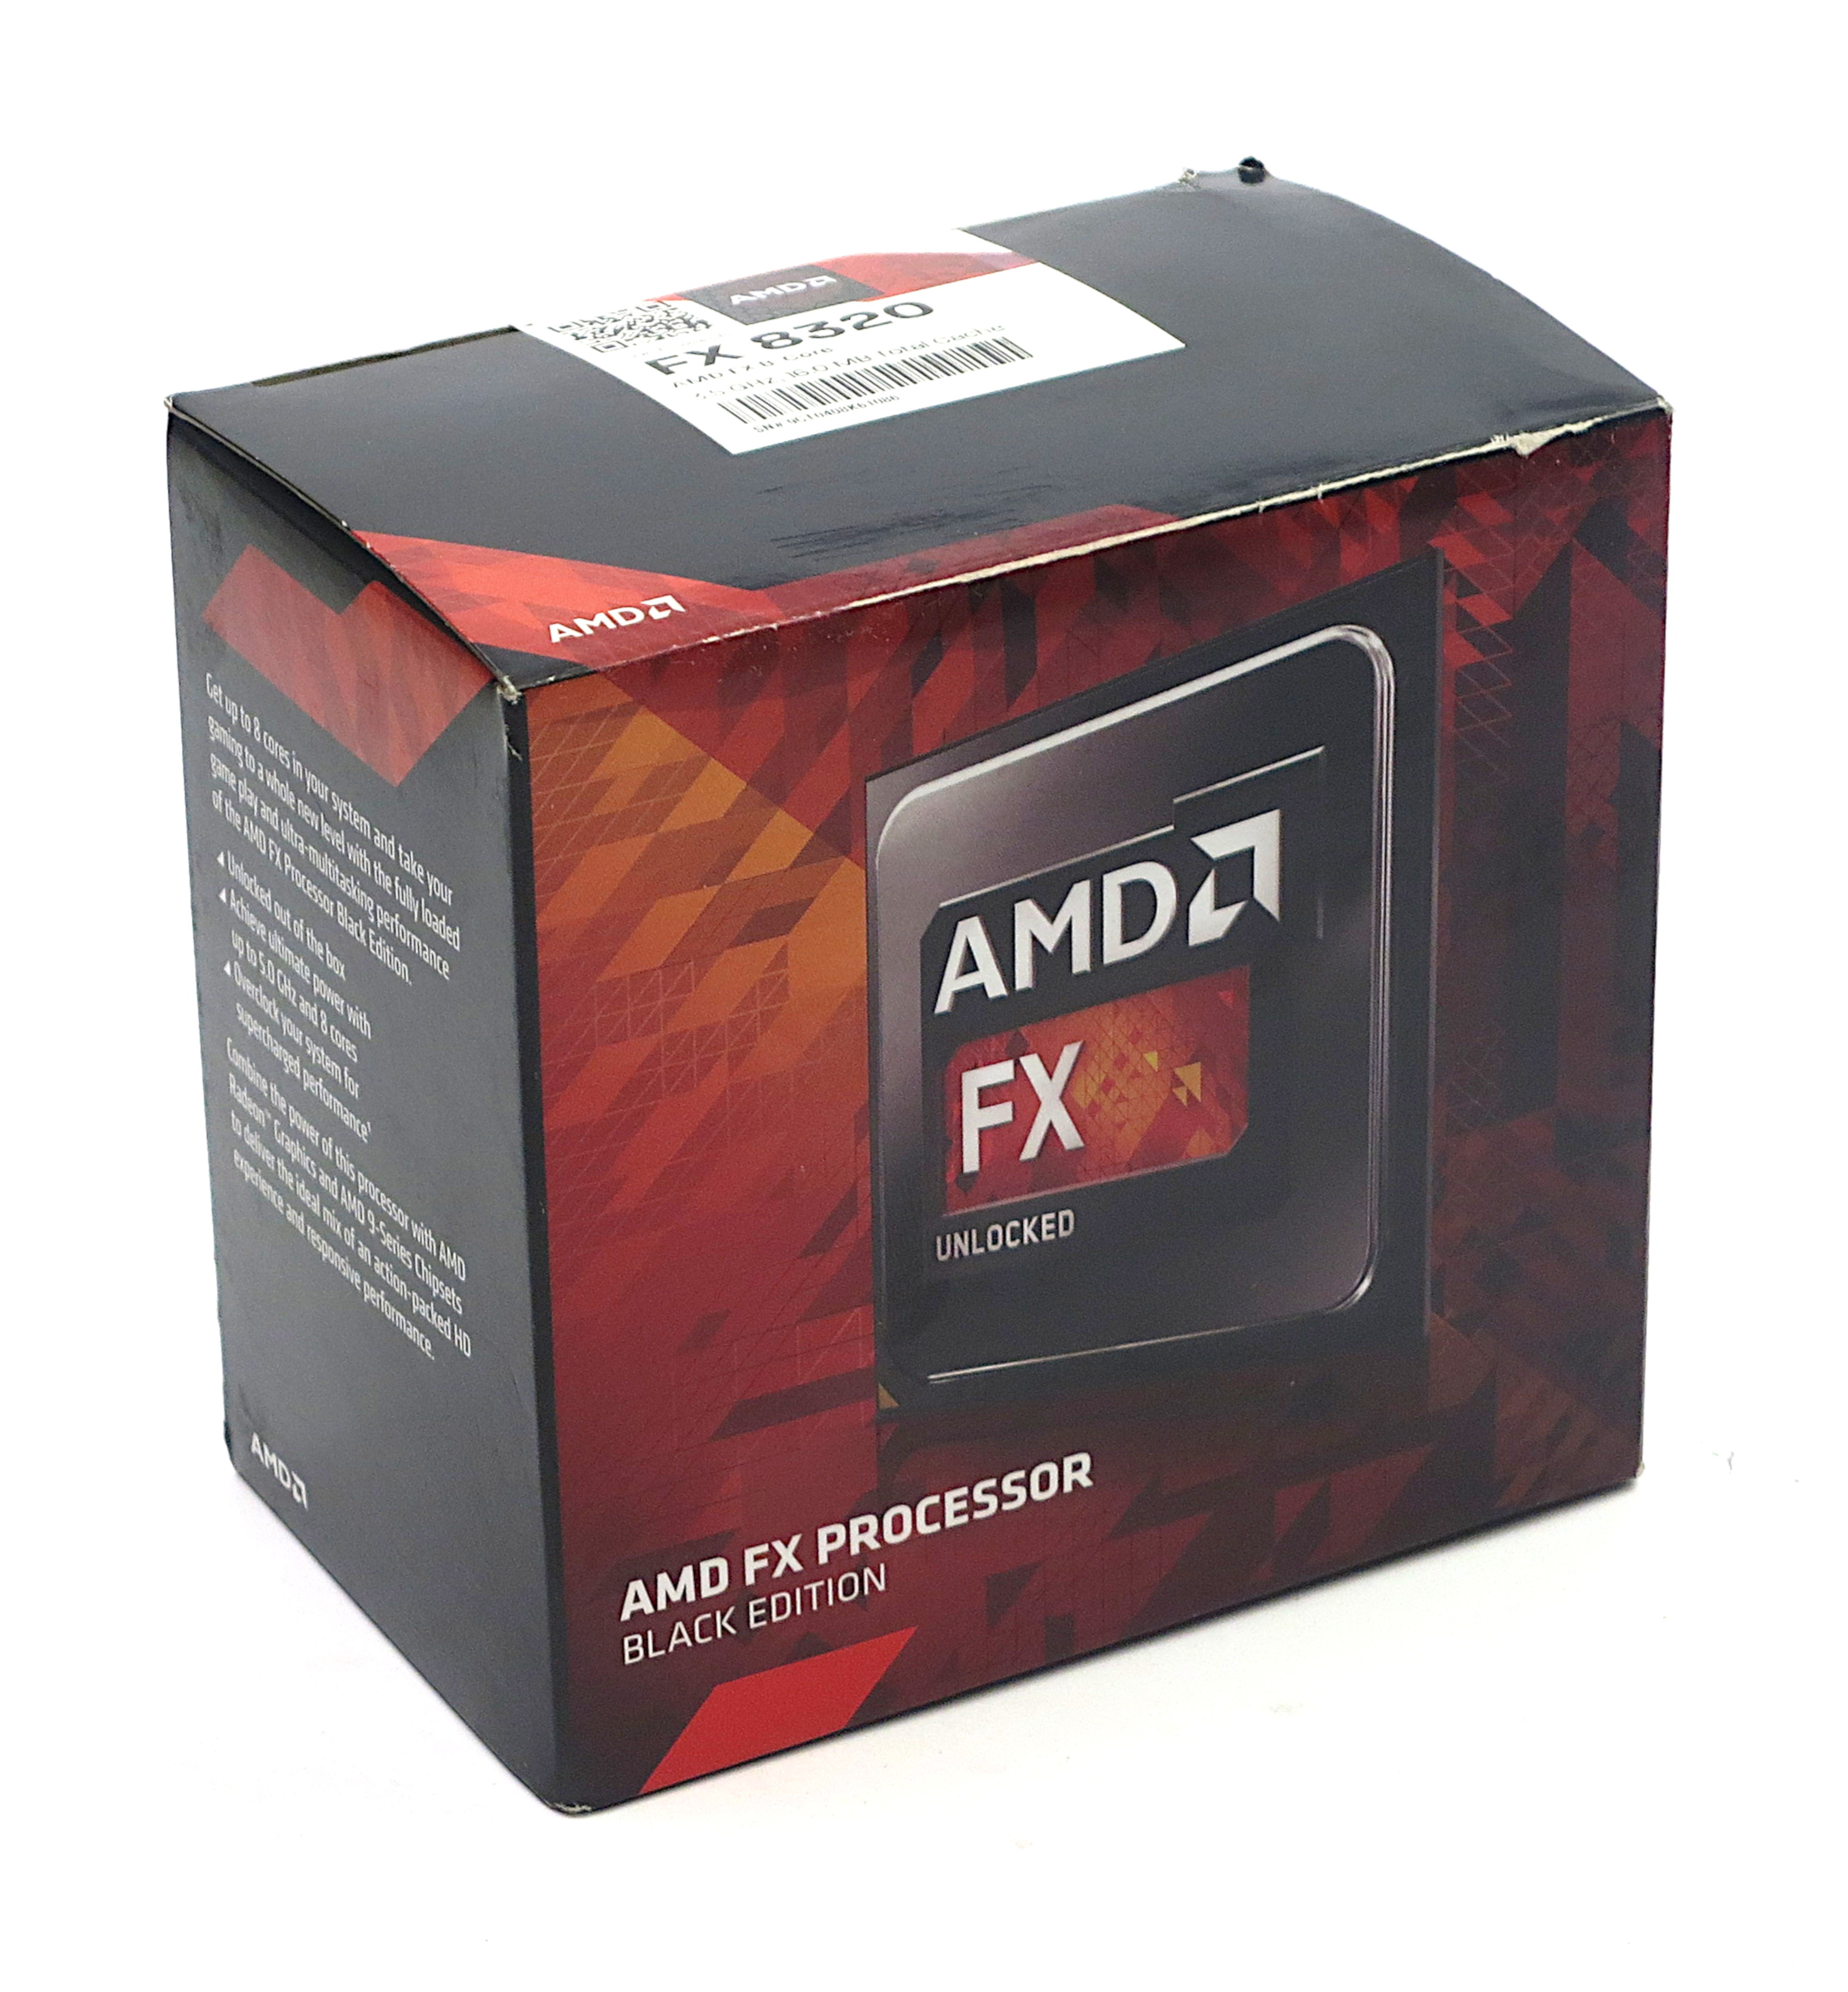 AMD FX 8320 Black Edition 3.5 Ghz 8 Core Socket AM3+ 16MB Cache CPU